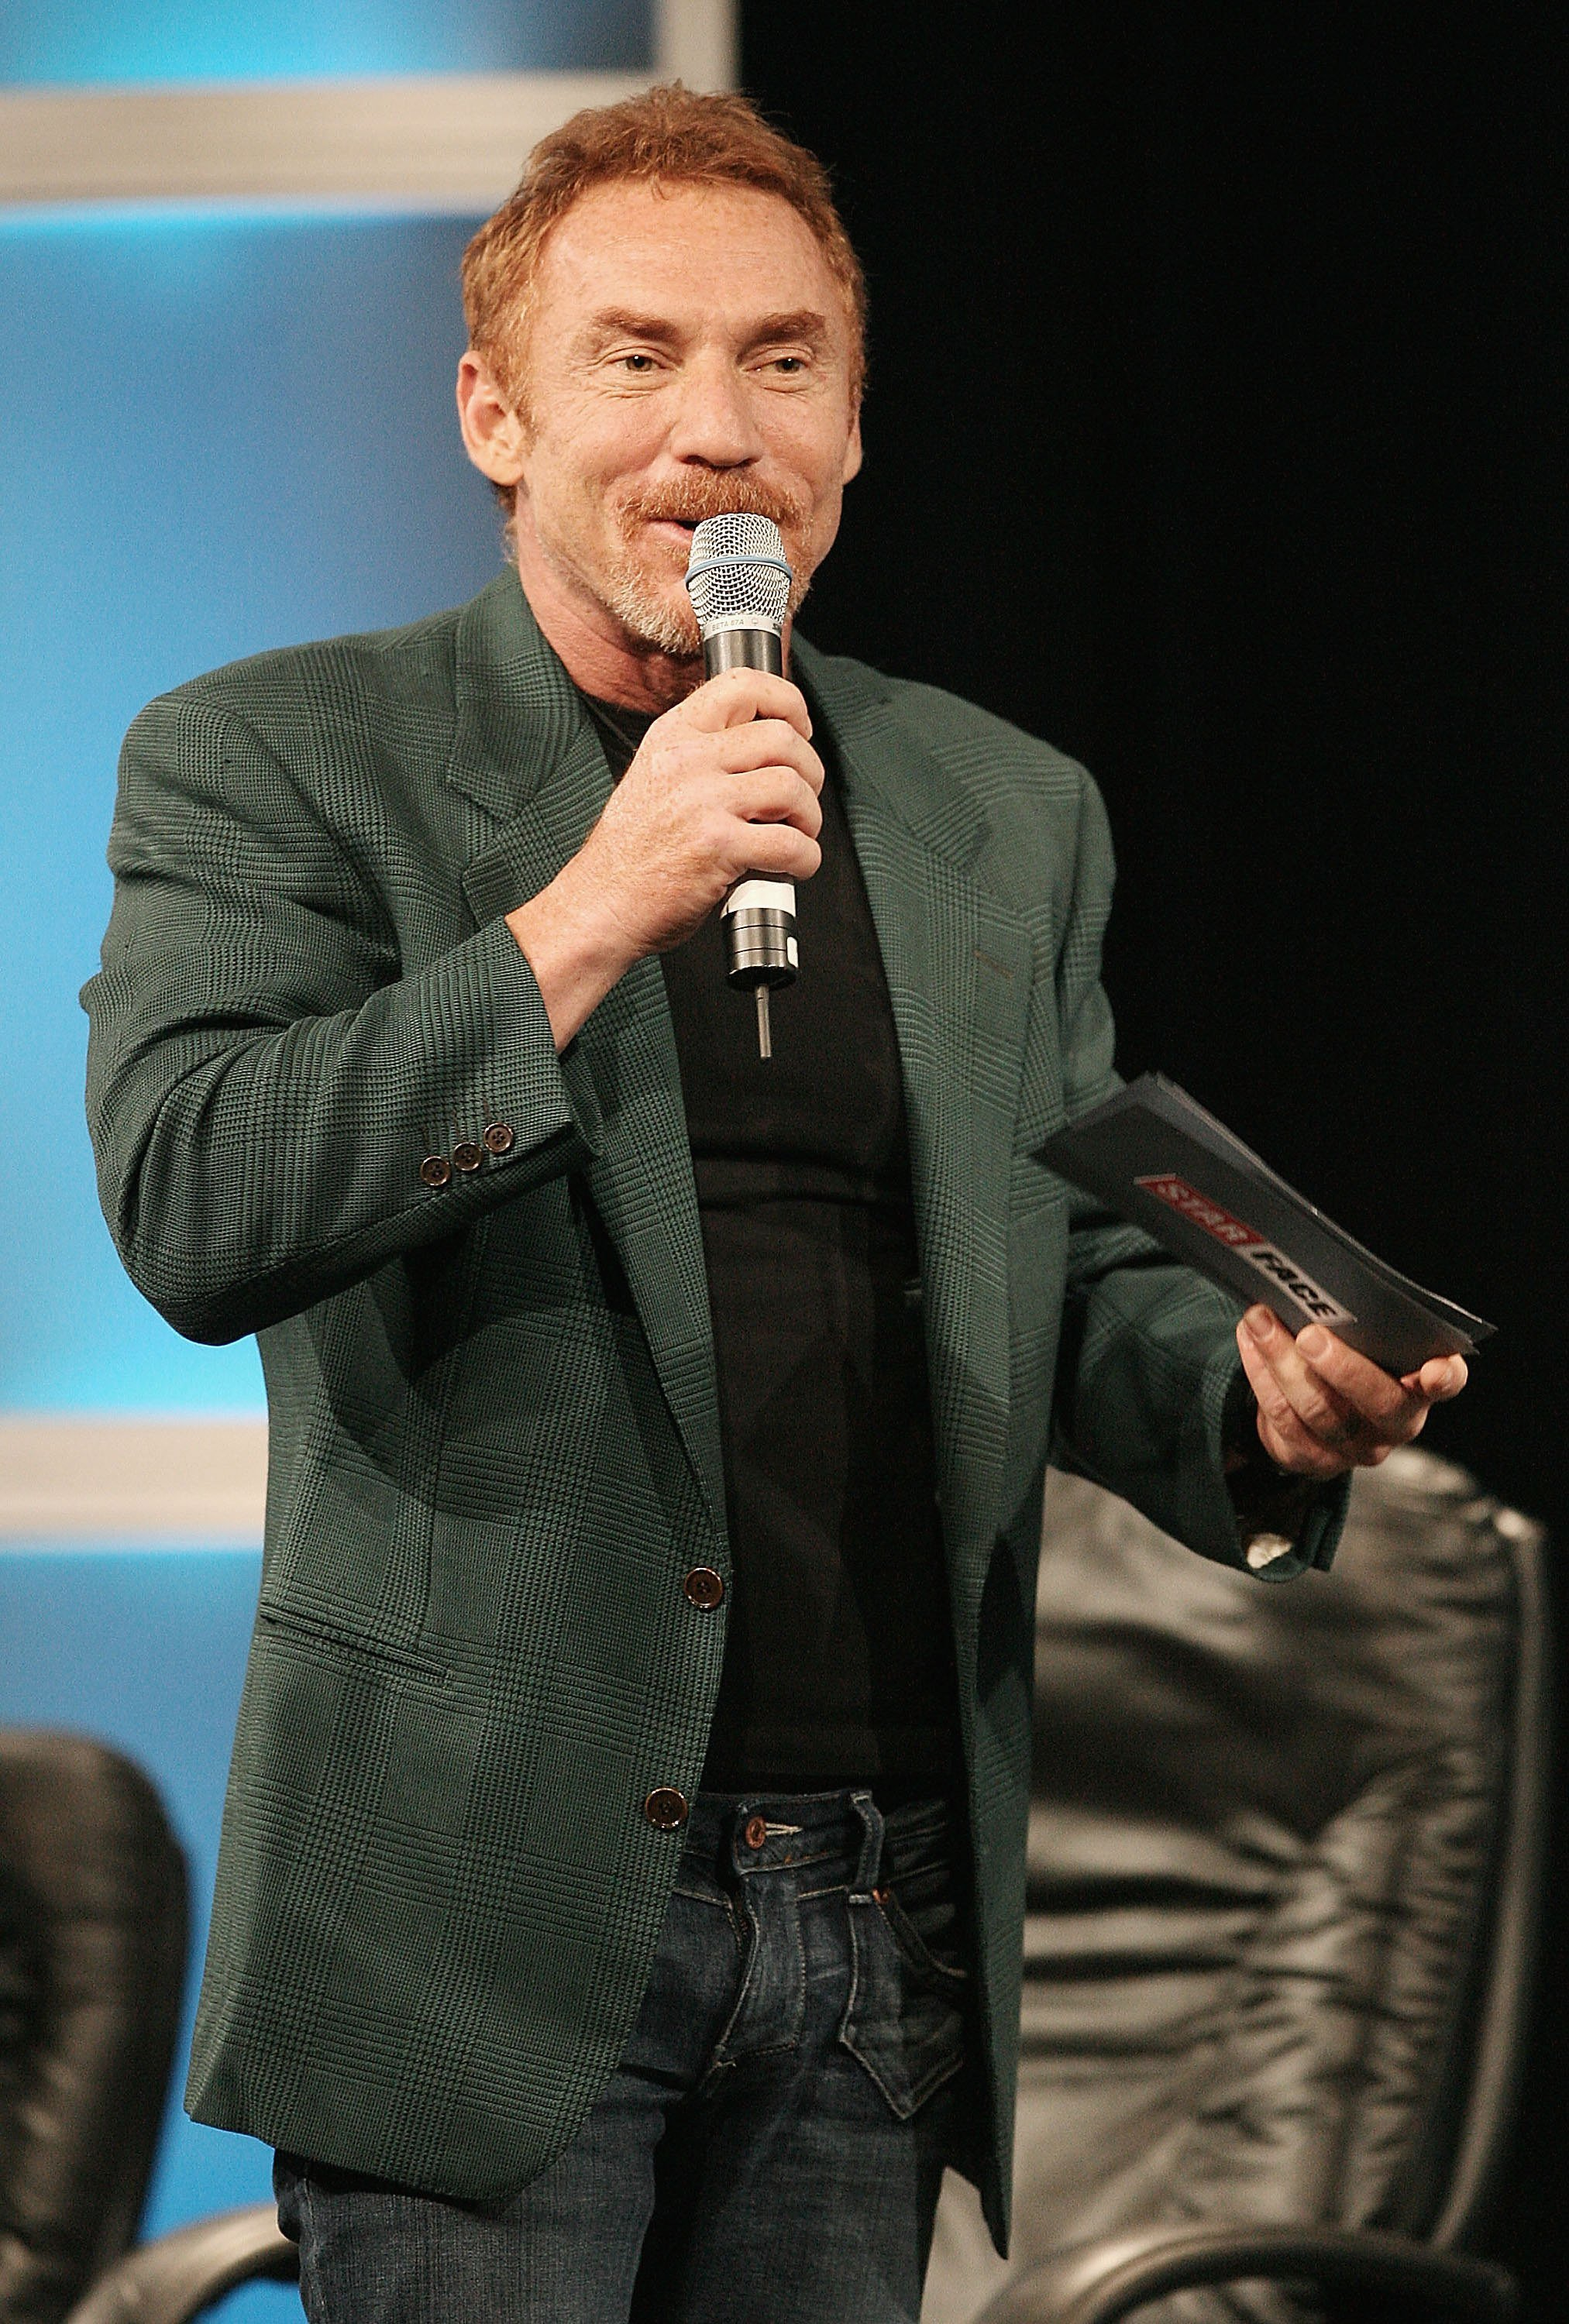 Image Source: Getty Images | Danny speaking at an event